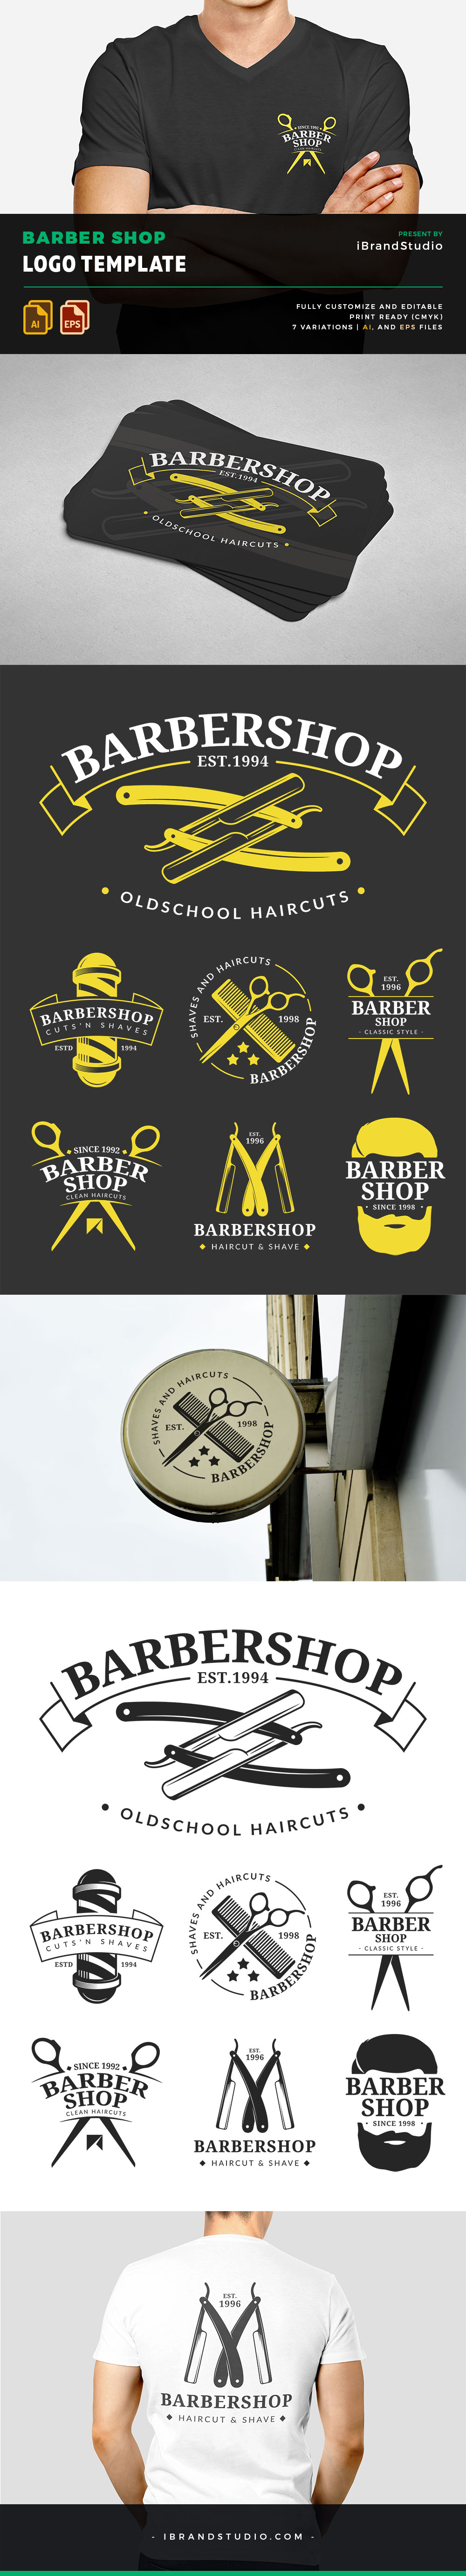 Free Barber Shop Logos and Badges